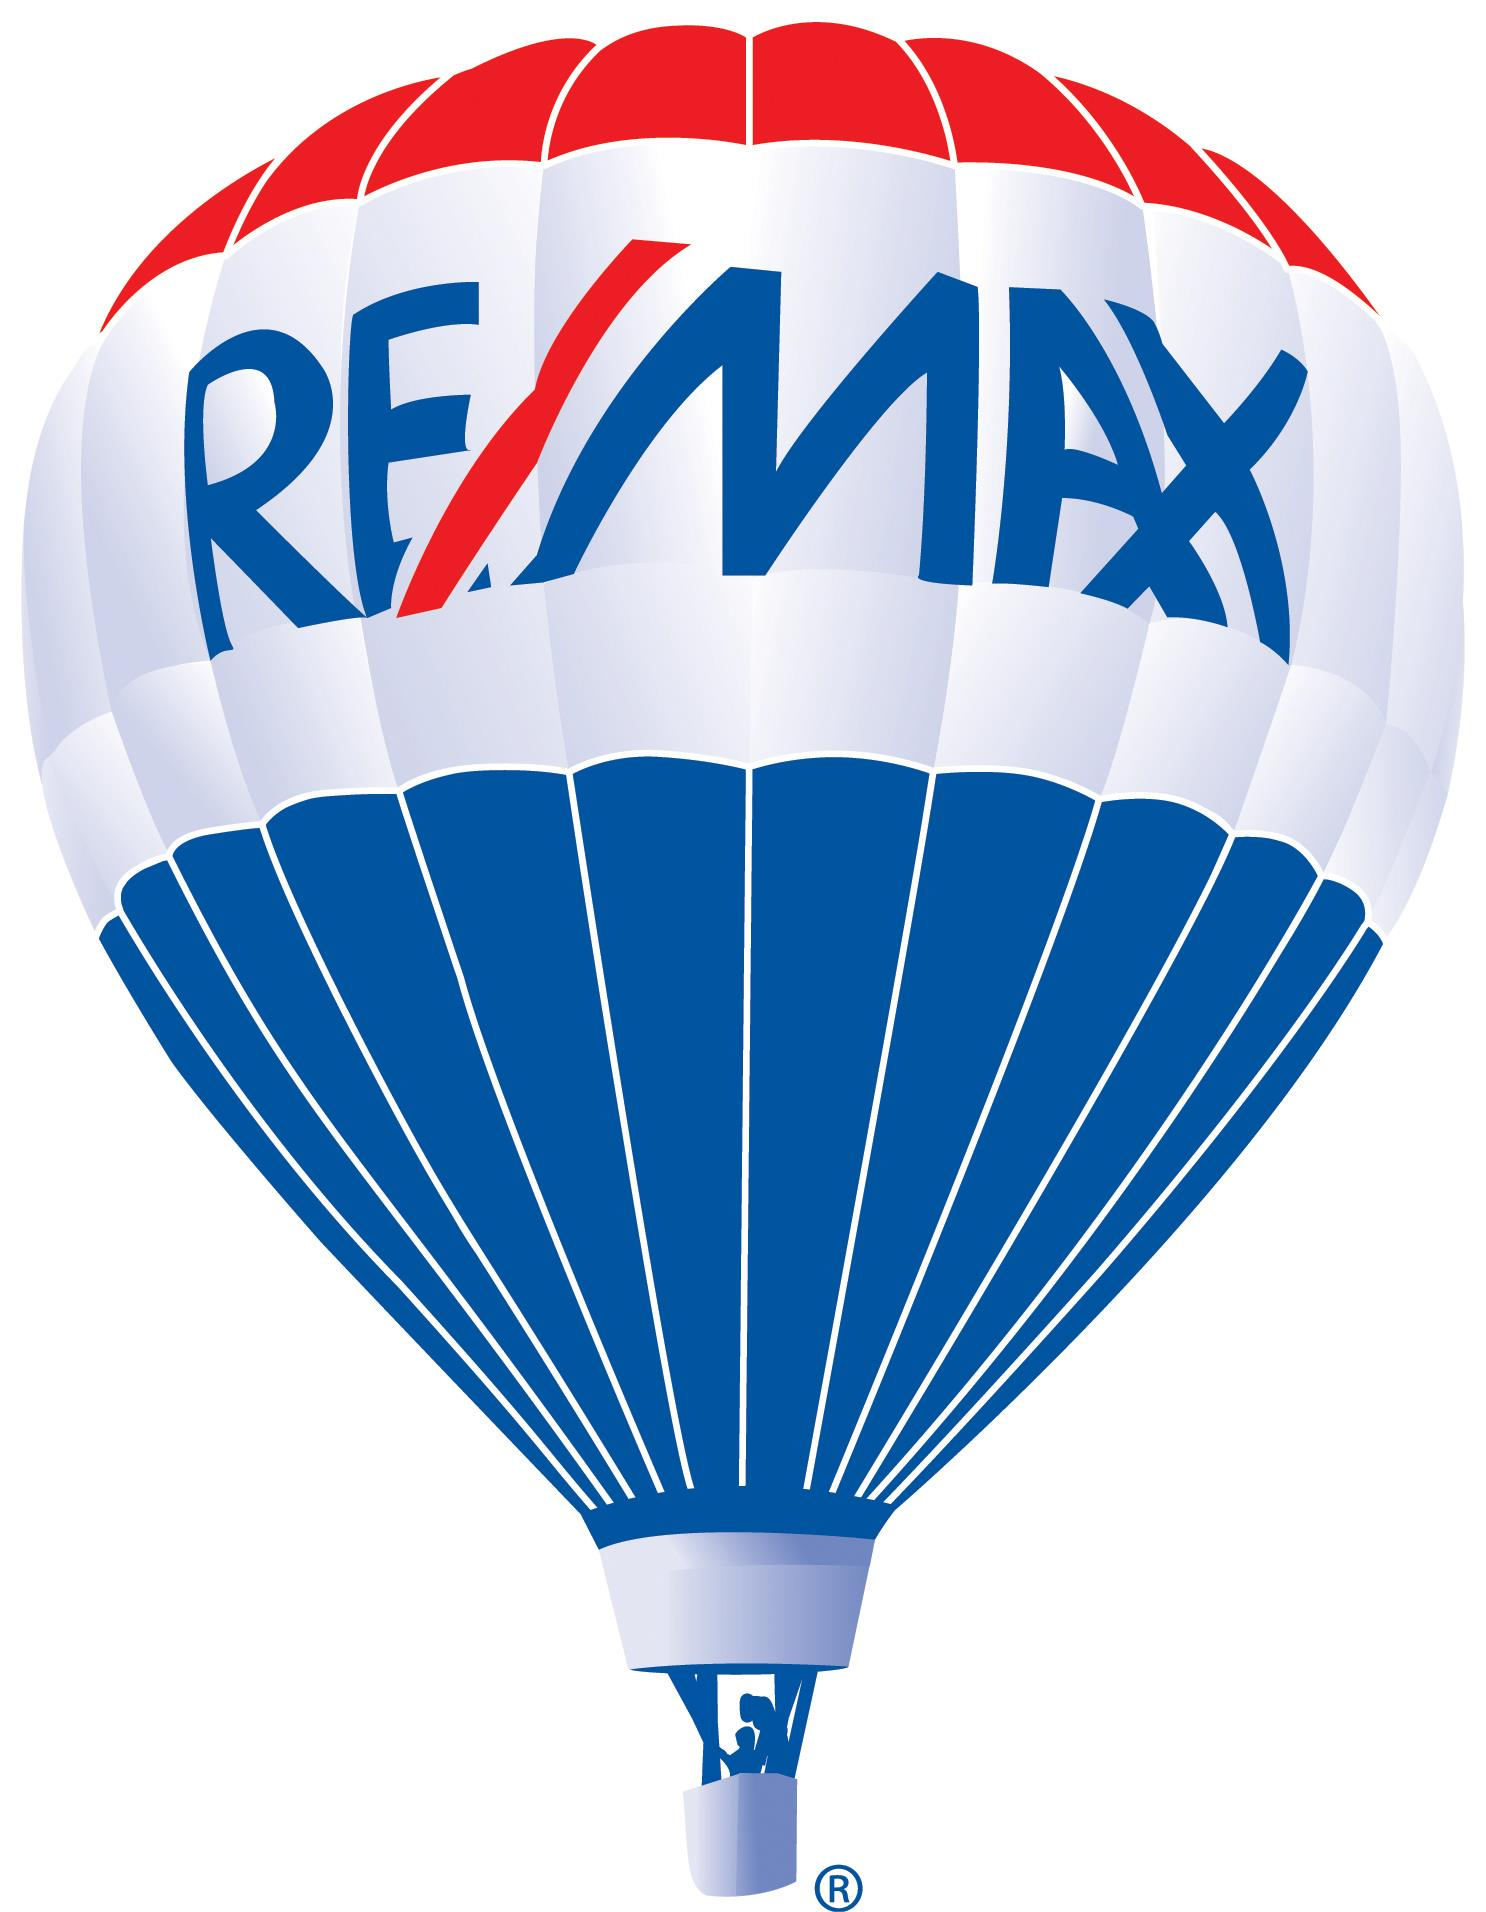 RE/MAX OF CHICO